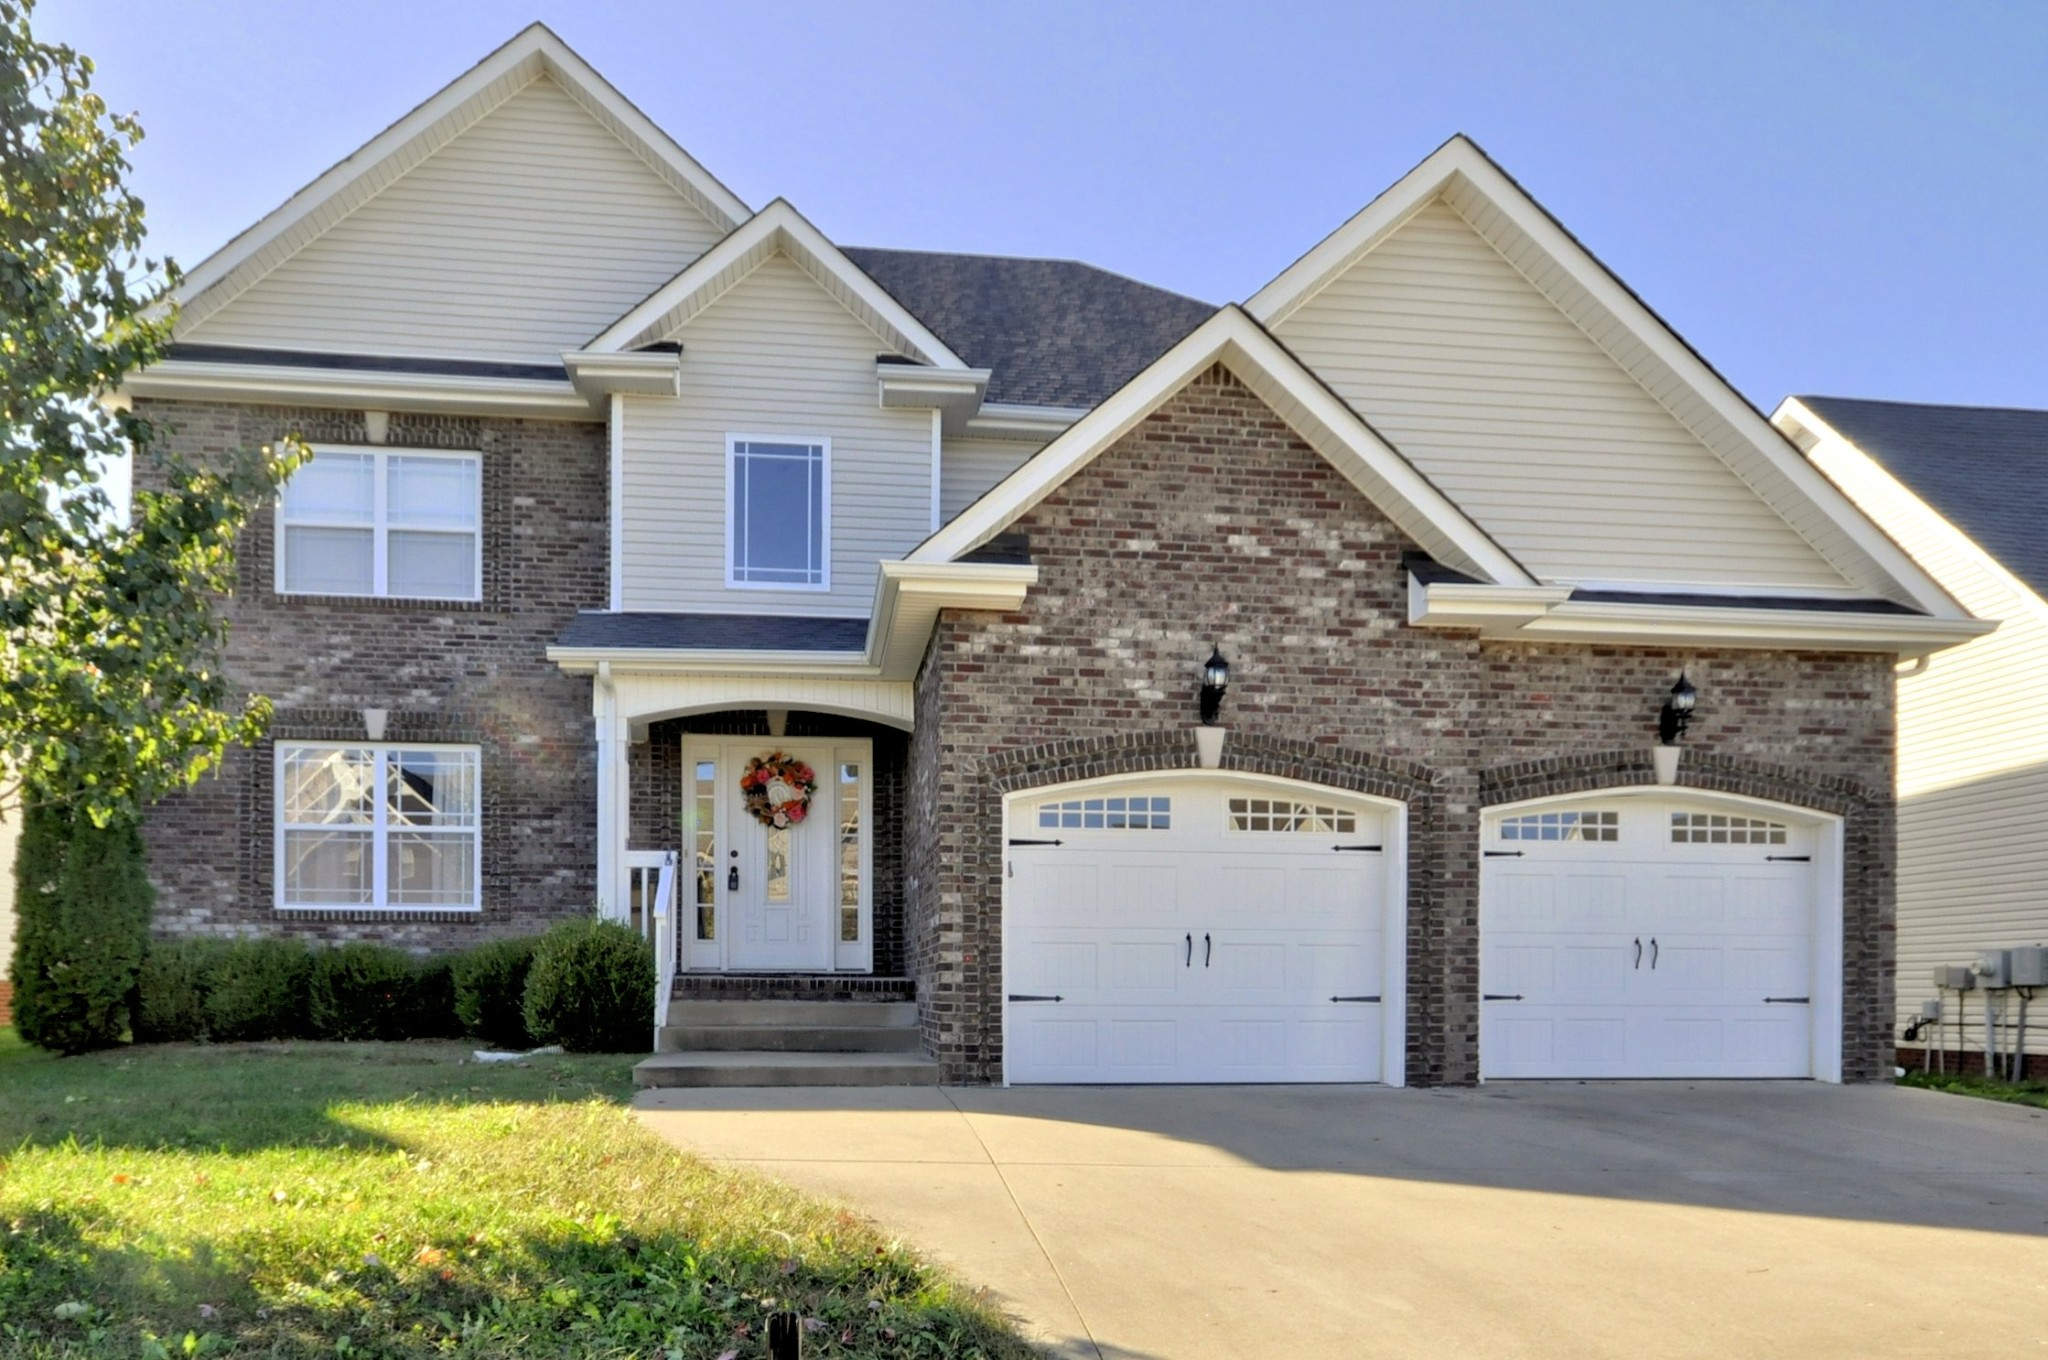 1253 CHINOOK CIR, Clarksville, TN 37042 - Clarksville, TN real estate listing